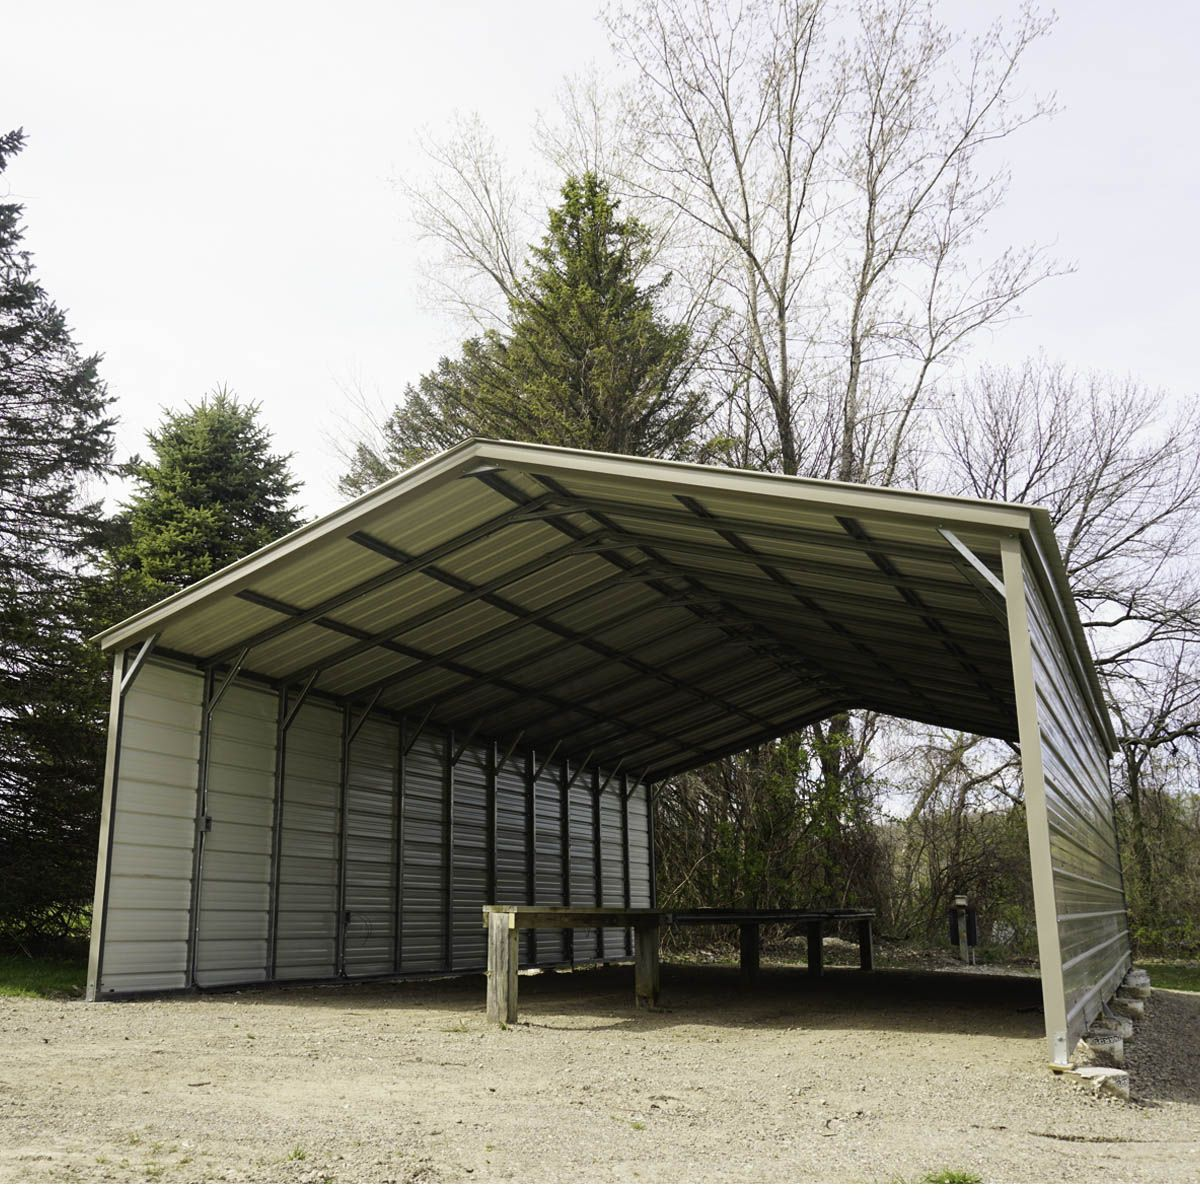 Midwest Steel Carports 2020 in 2020 Steel carports